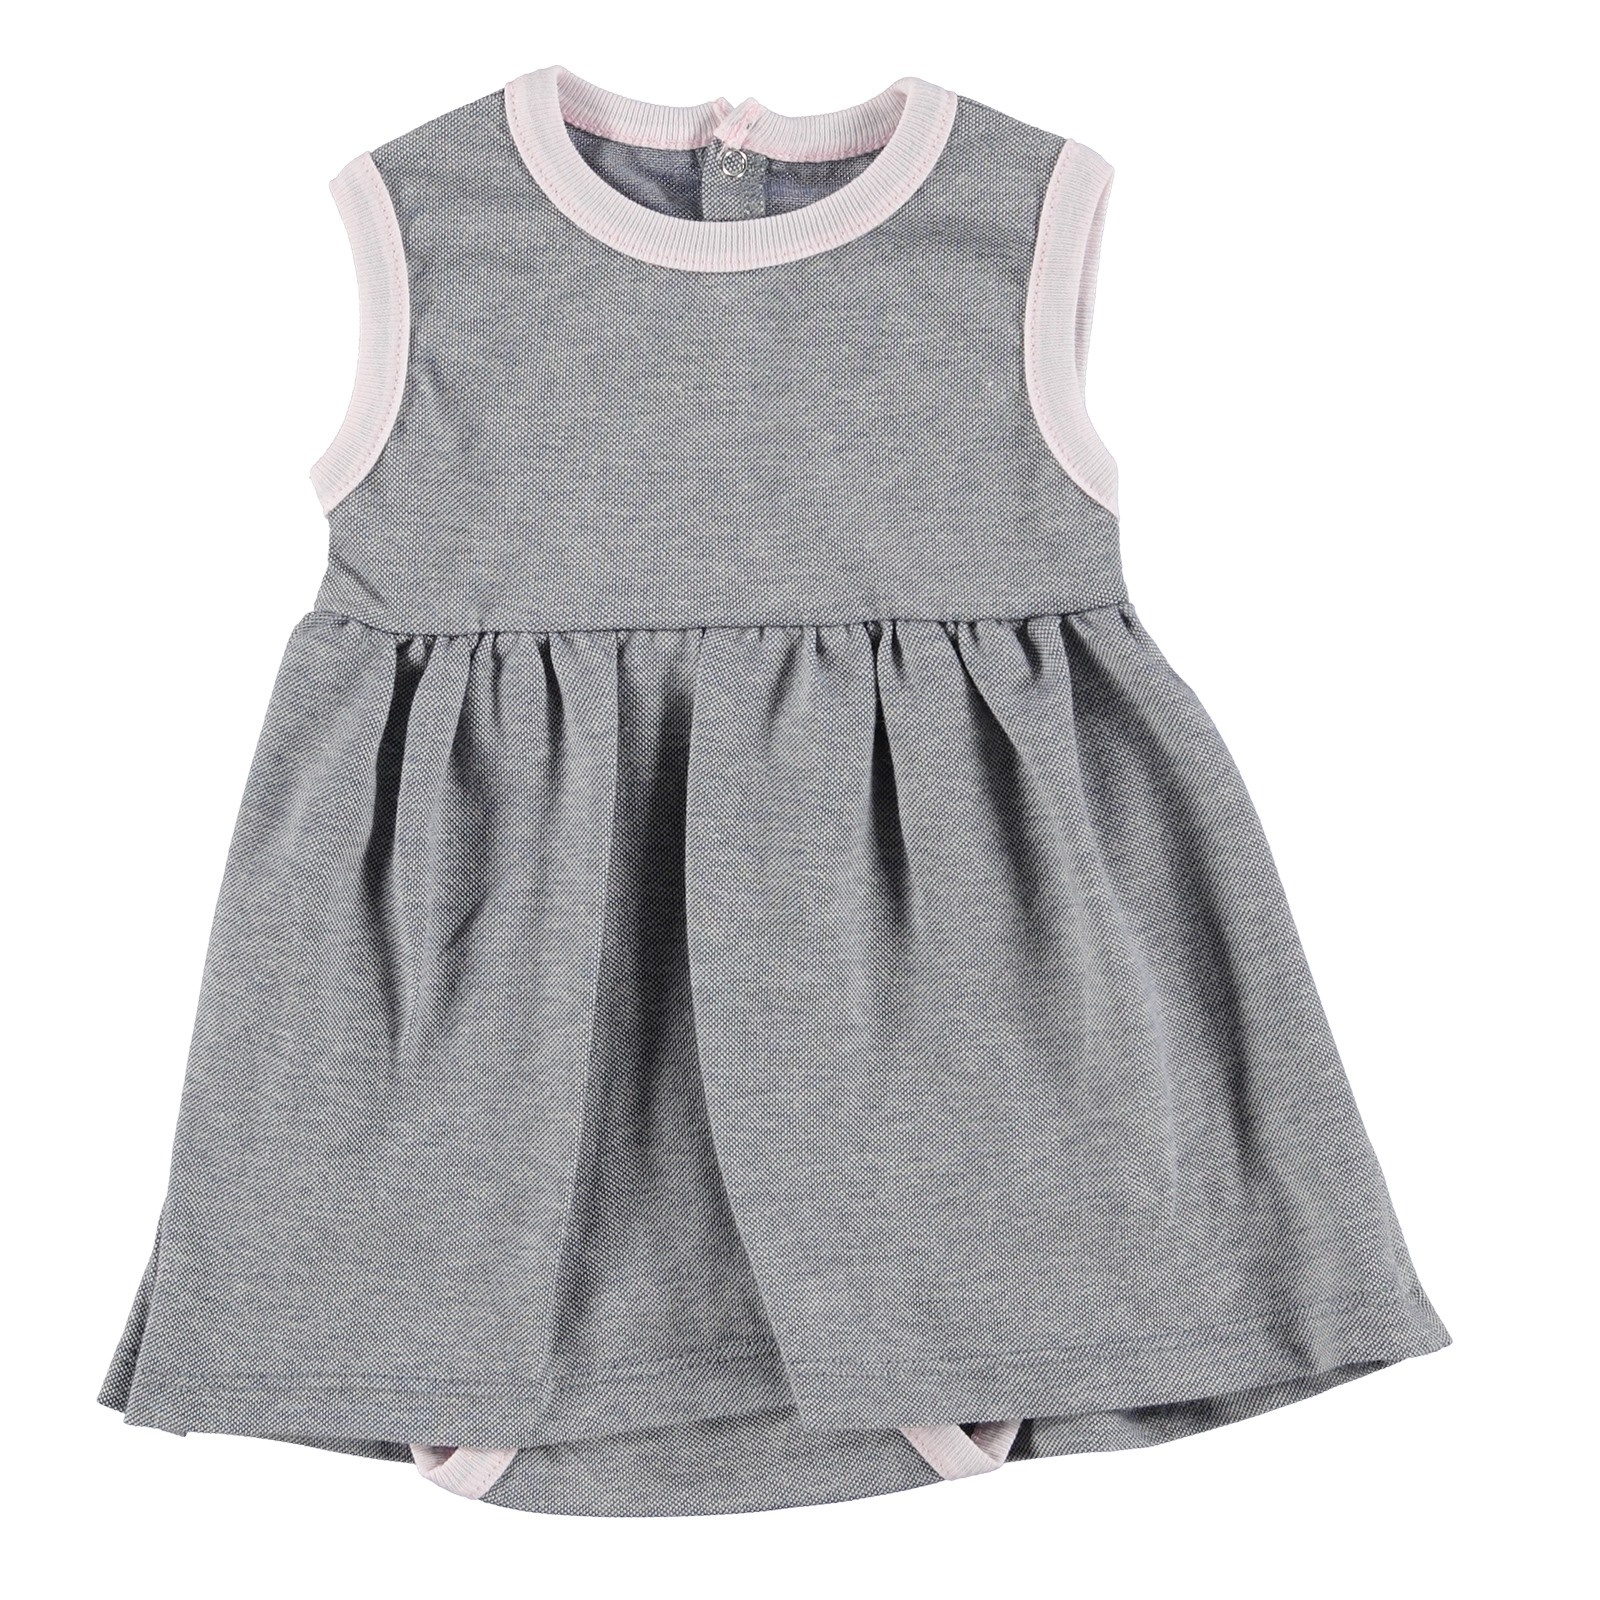 Ebebek Newborn Fashion Club Baby Girl Dress Bodysuit